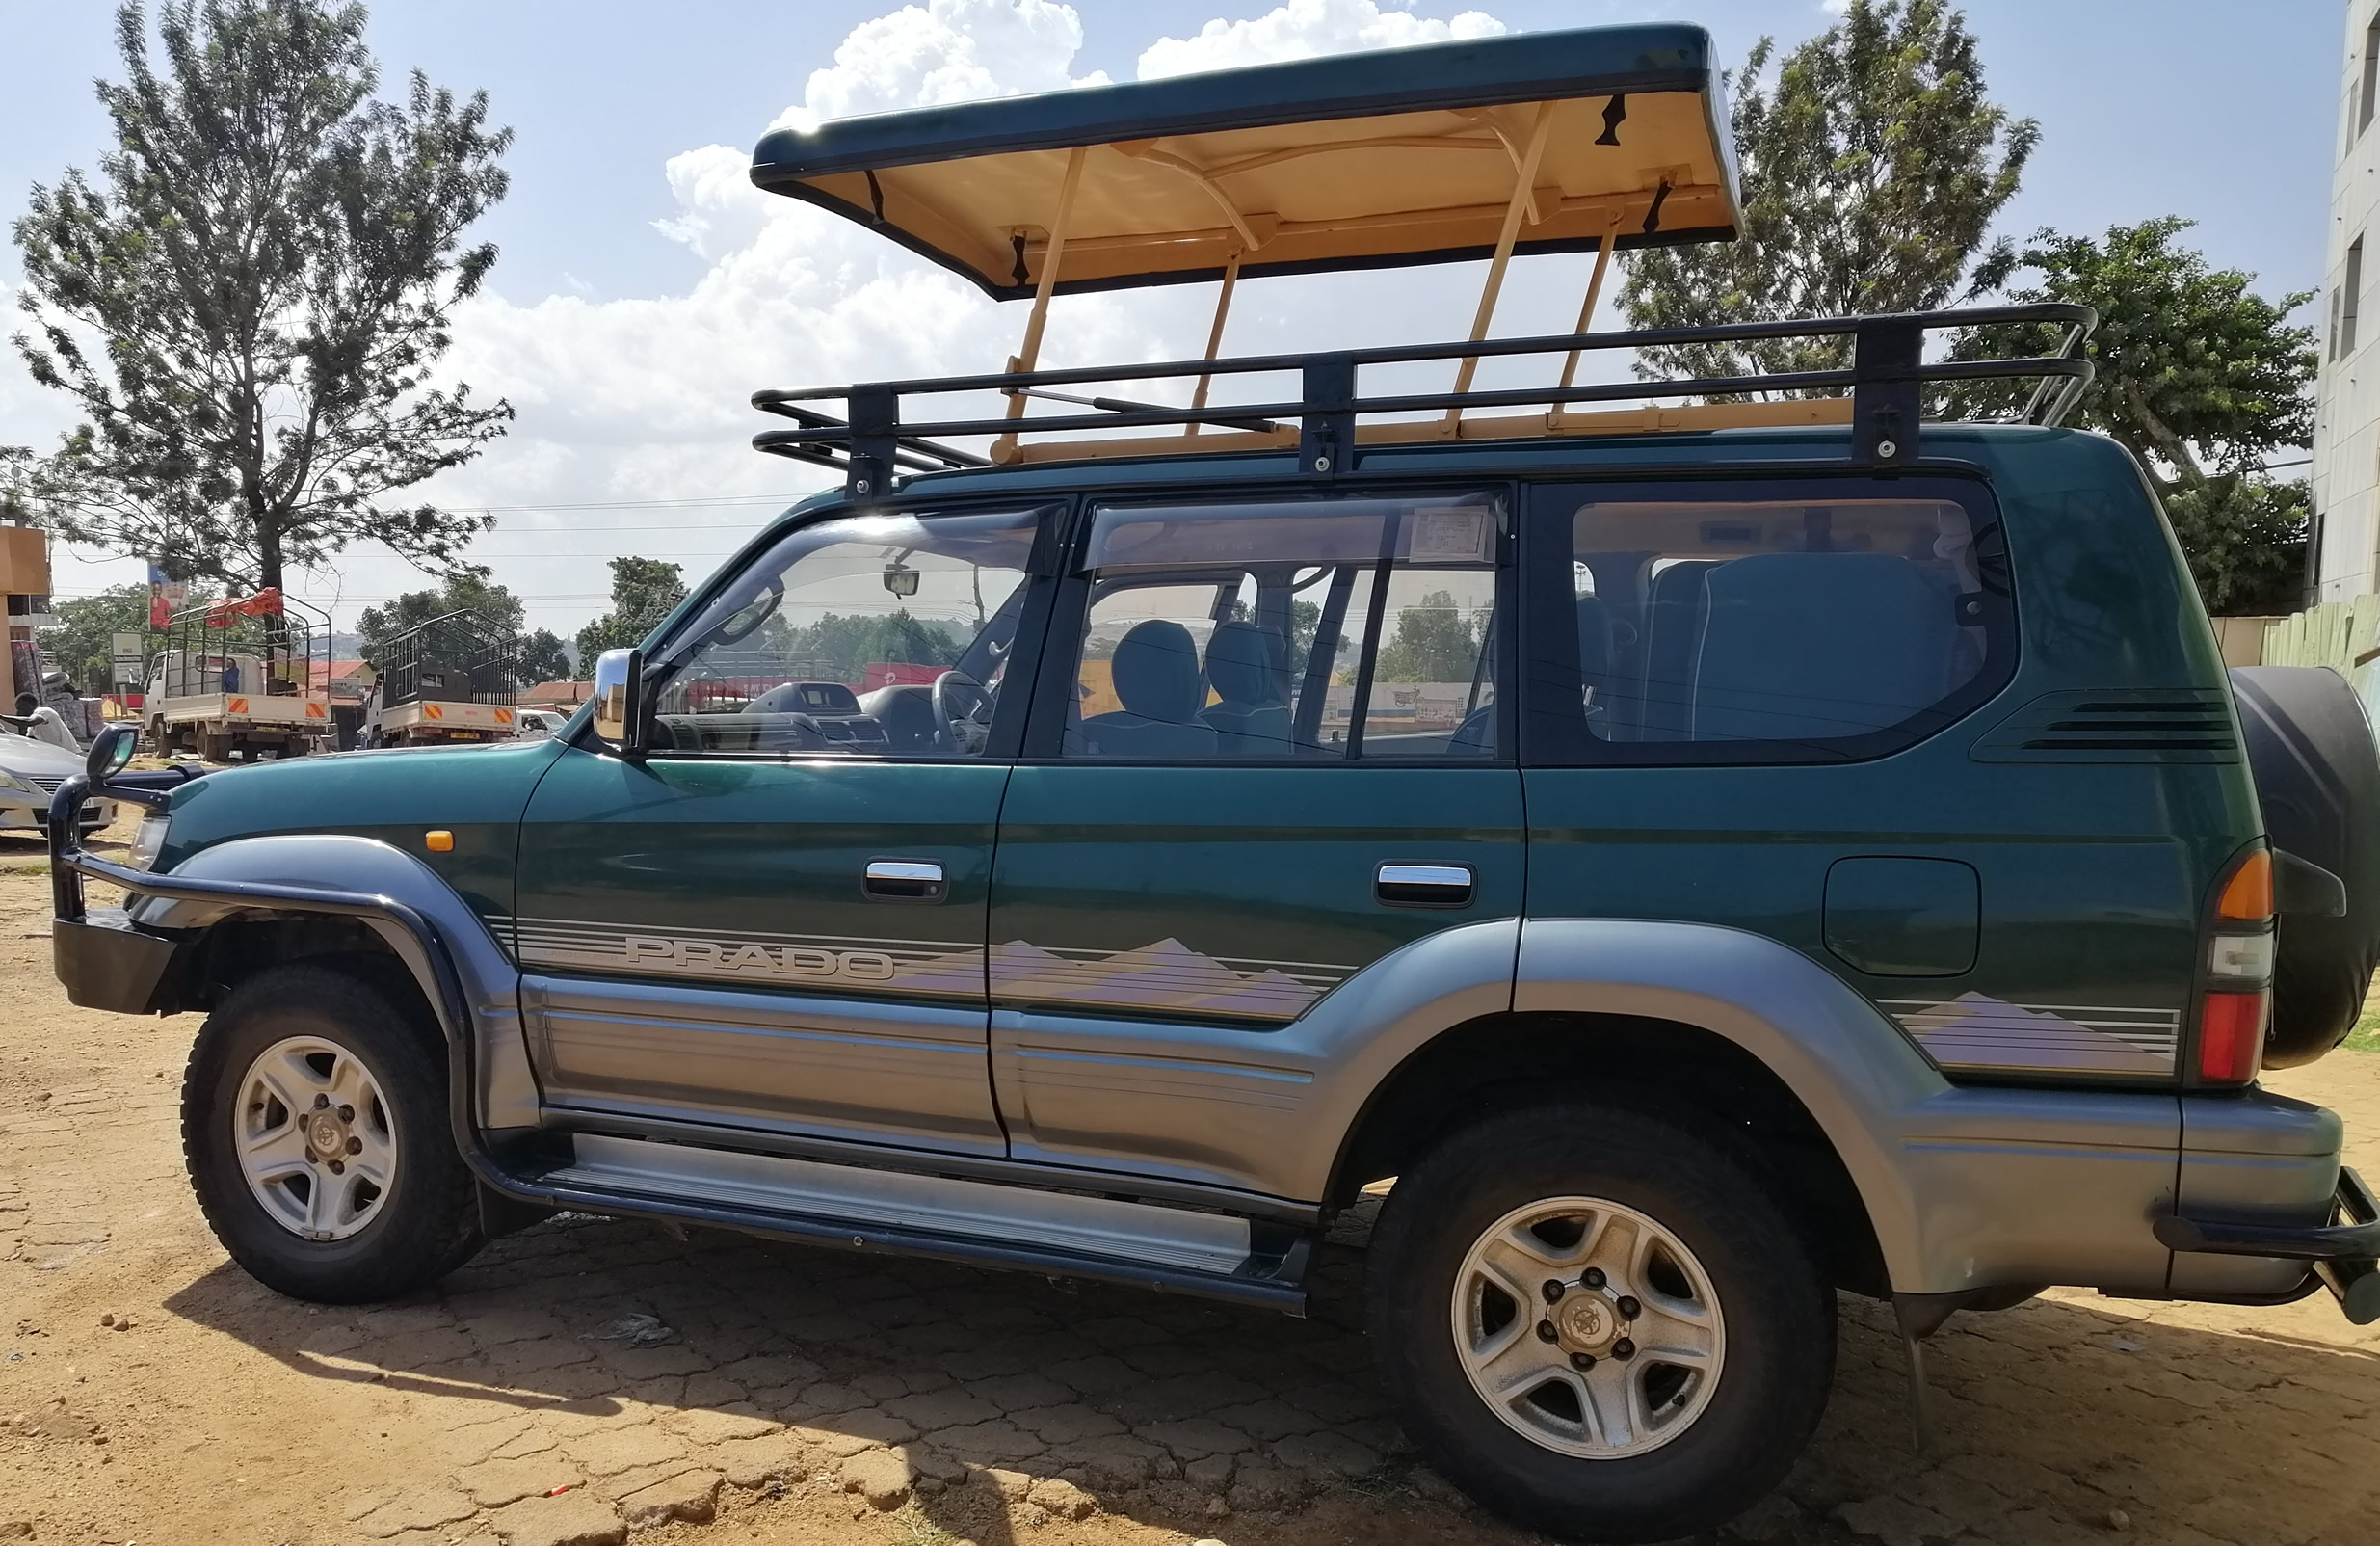 Pop-up Roof Land Cruiser